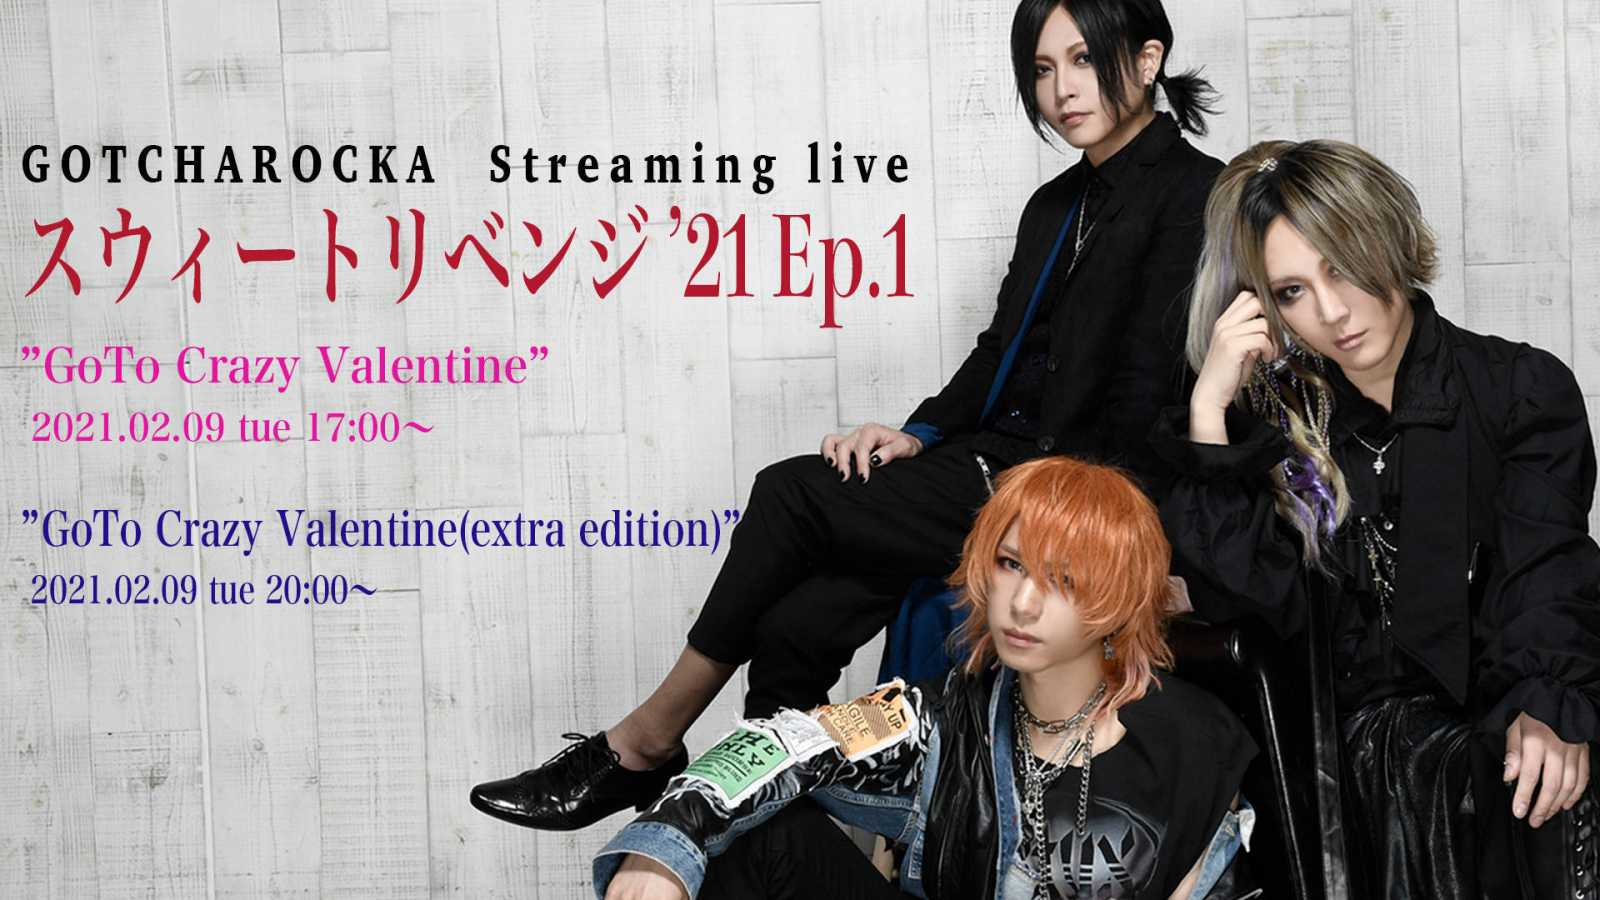 GOTCHAROCKA to Live Stream Two-Part Event